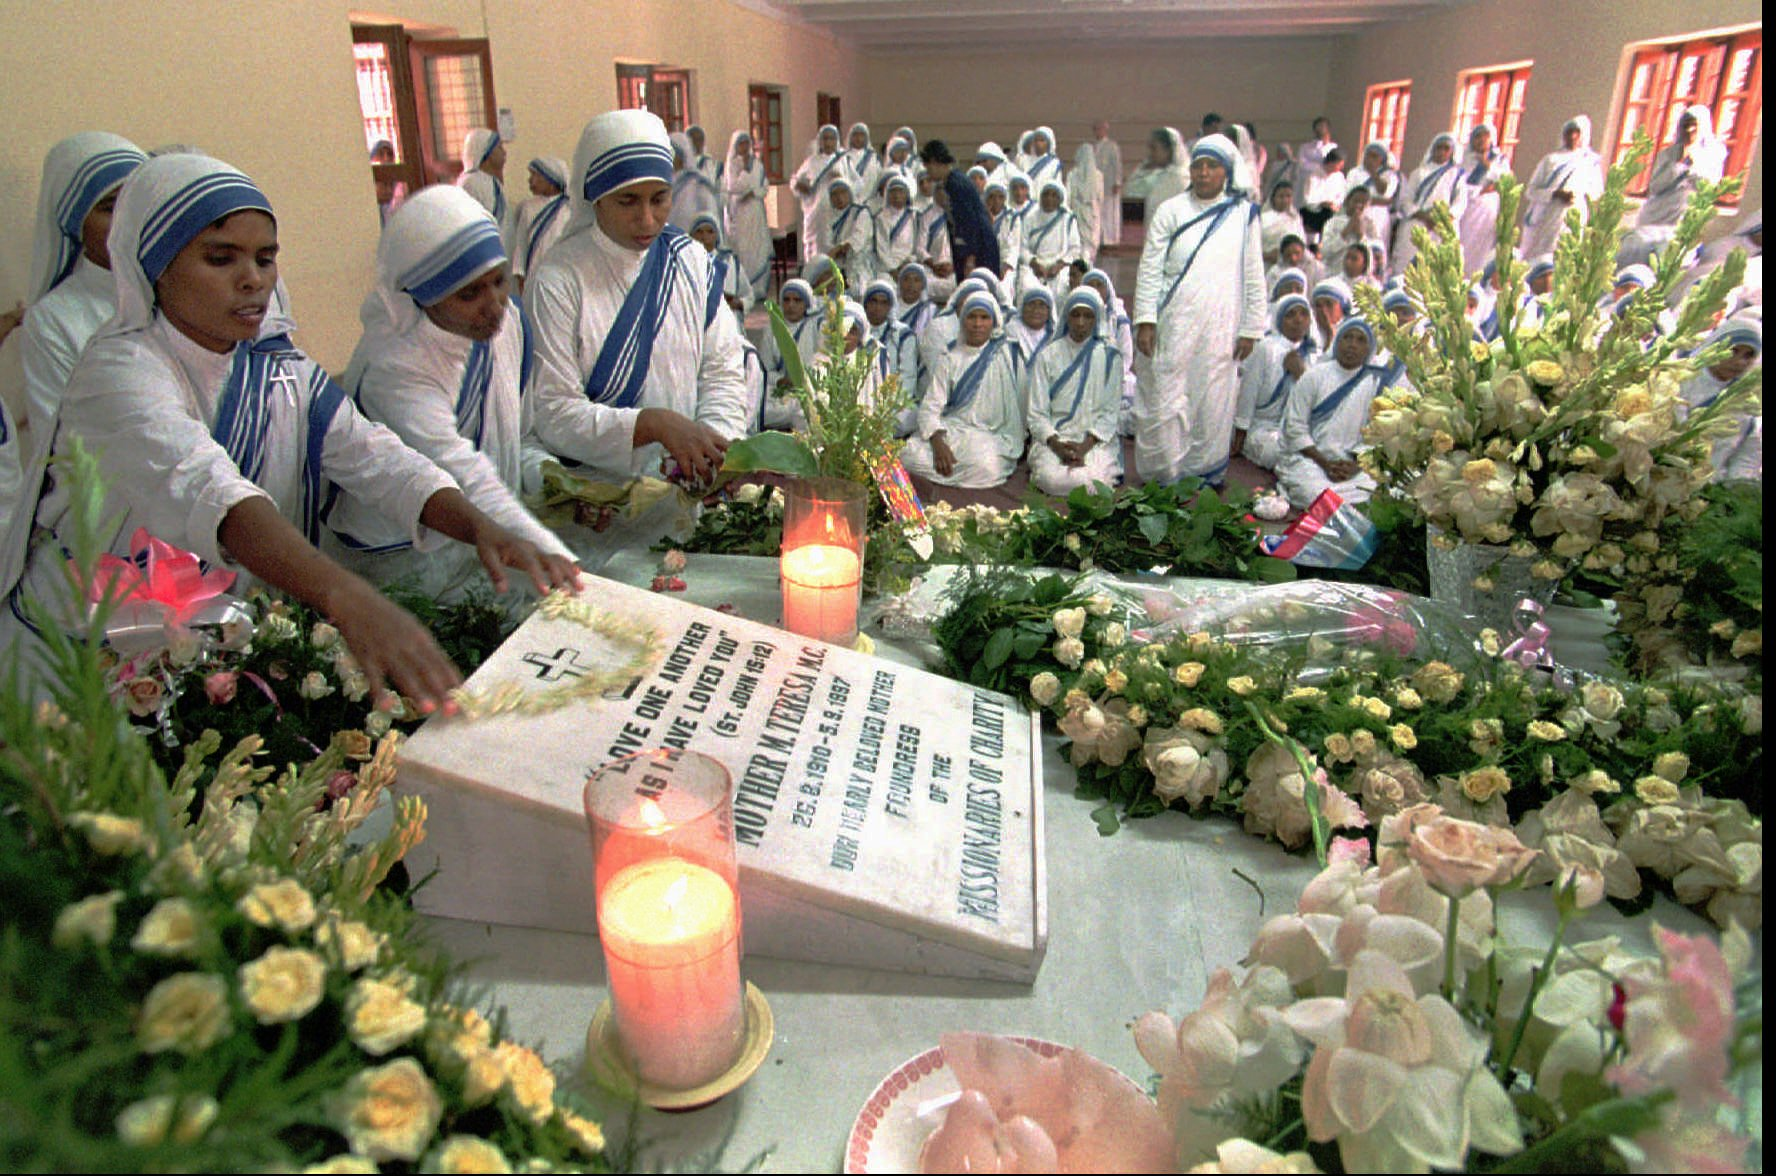 Sisters of the Missionaries of Charity decorate the tomb of Mother Teresa, who was buried after a state funeral, at Mother House in Calcutta, India, on Sept. 14, 1997.